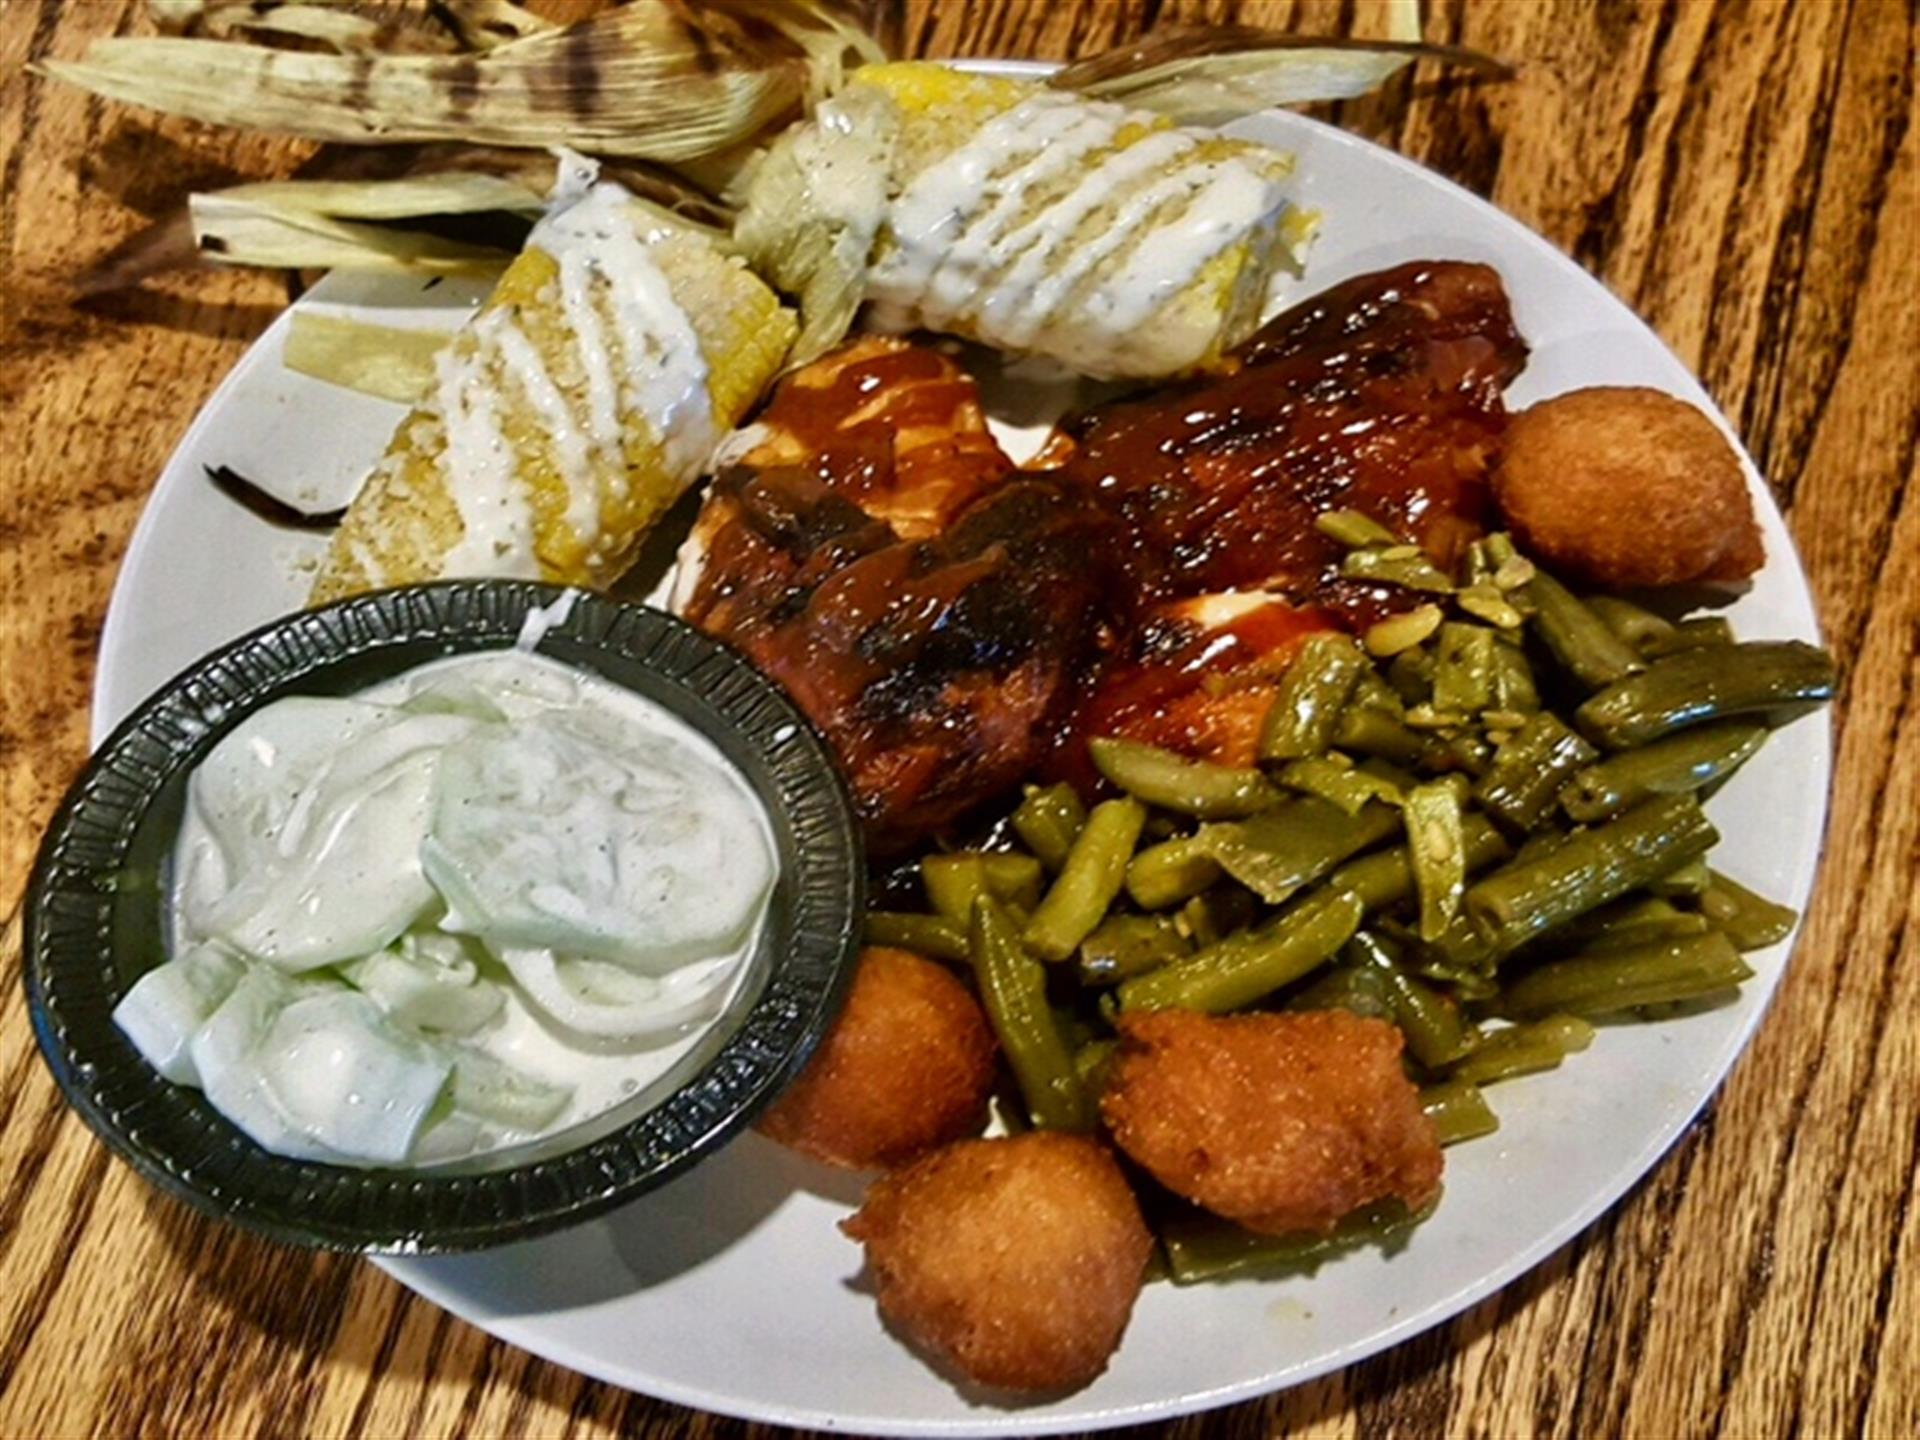 bbq chicken served with green beans, hush puppies and corn on the cobb